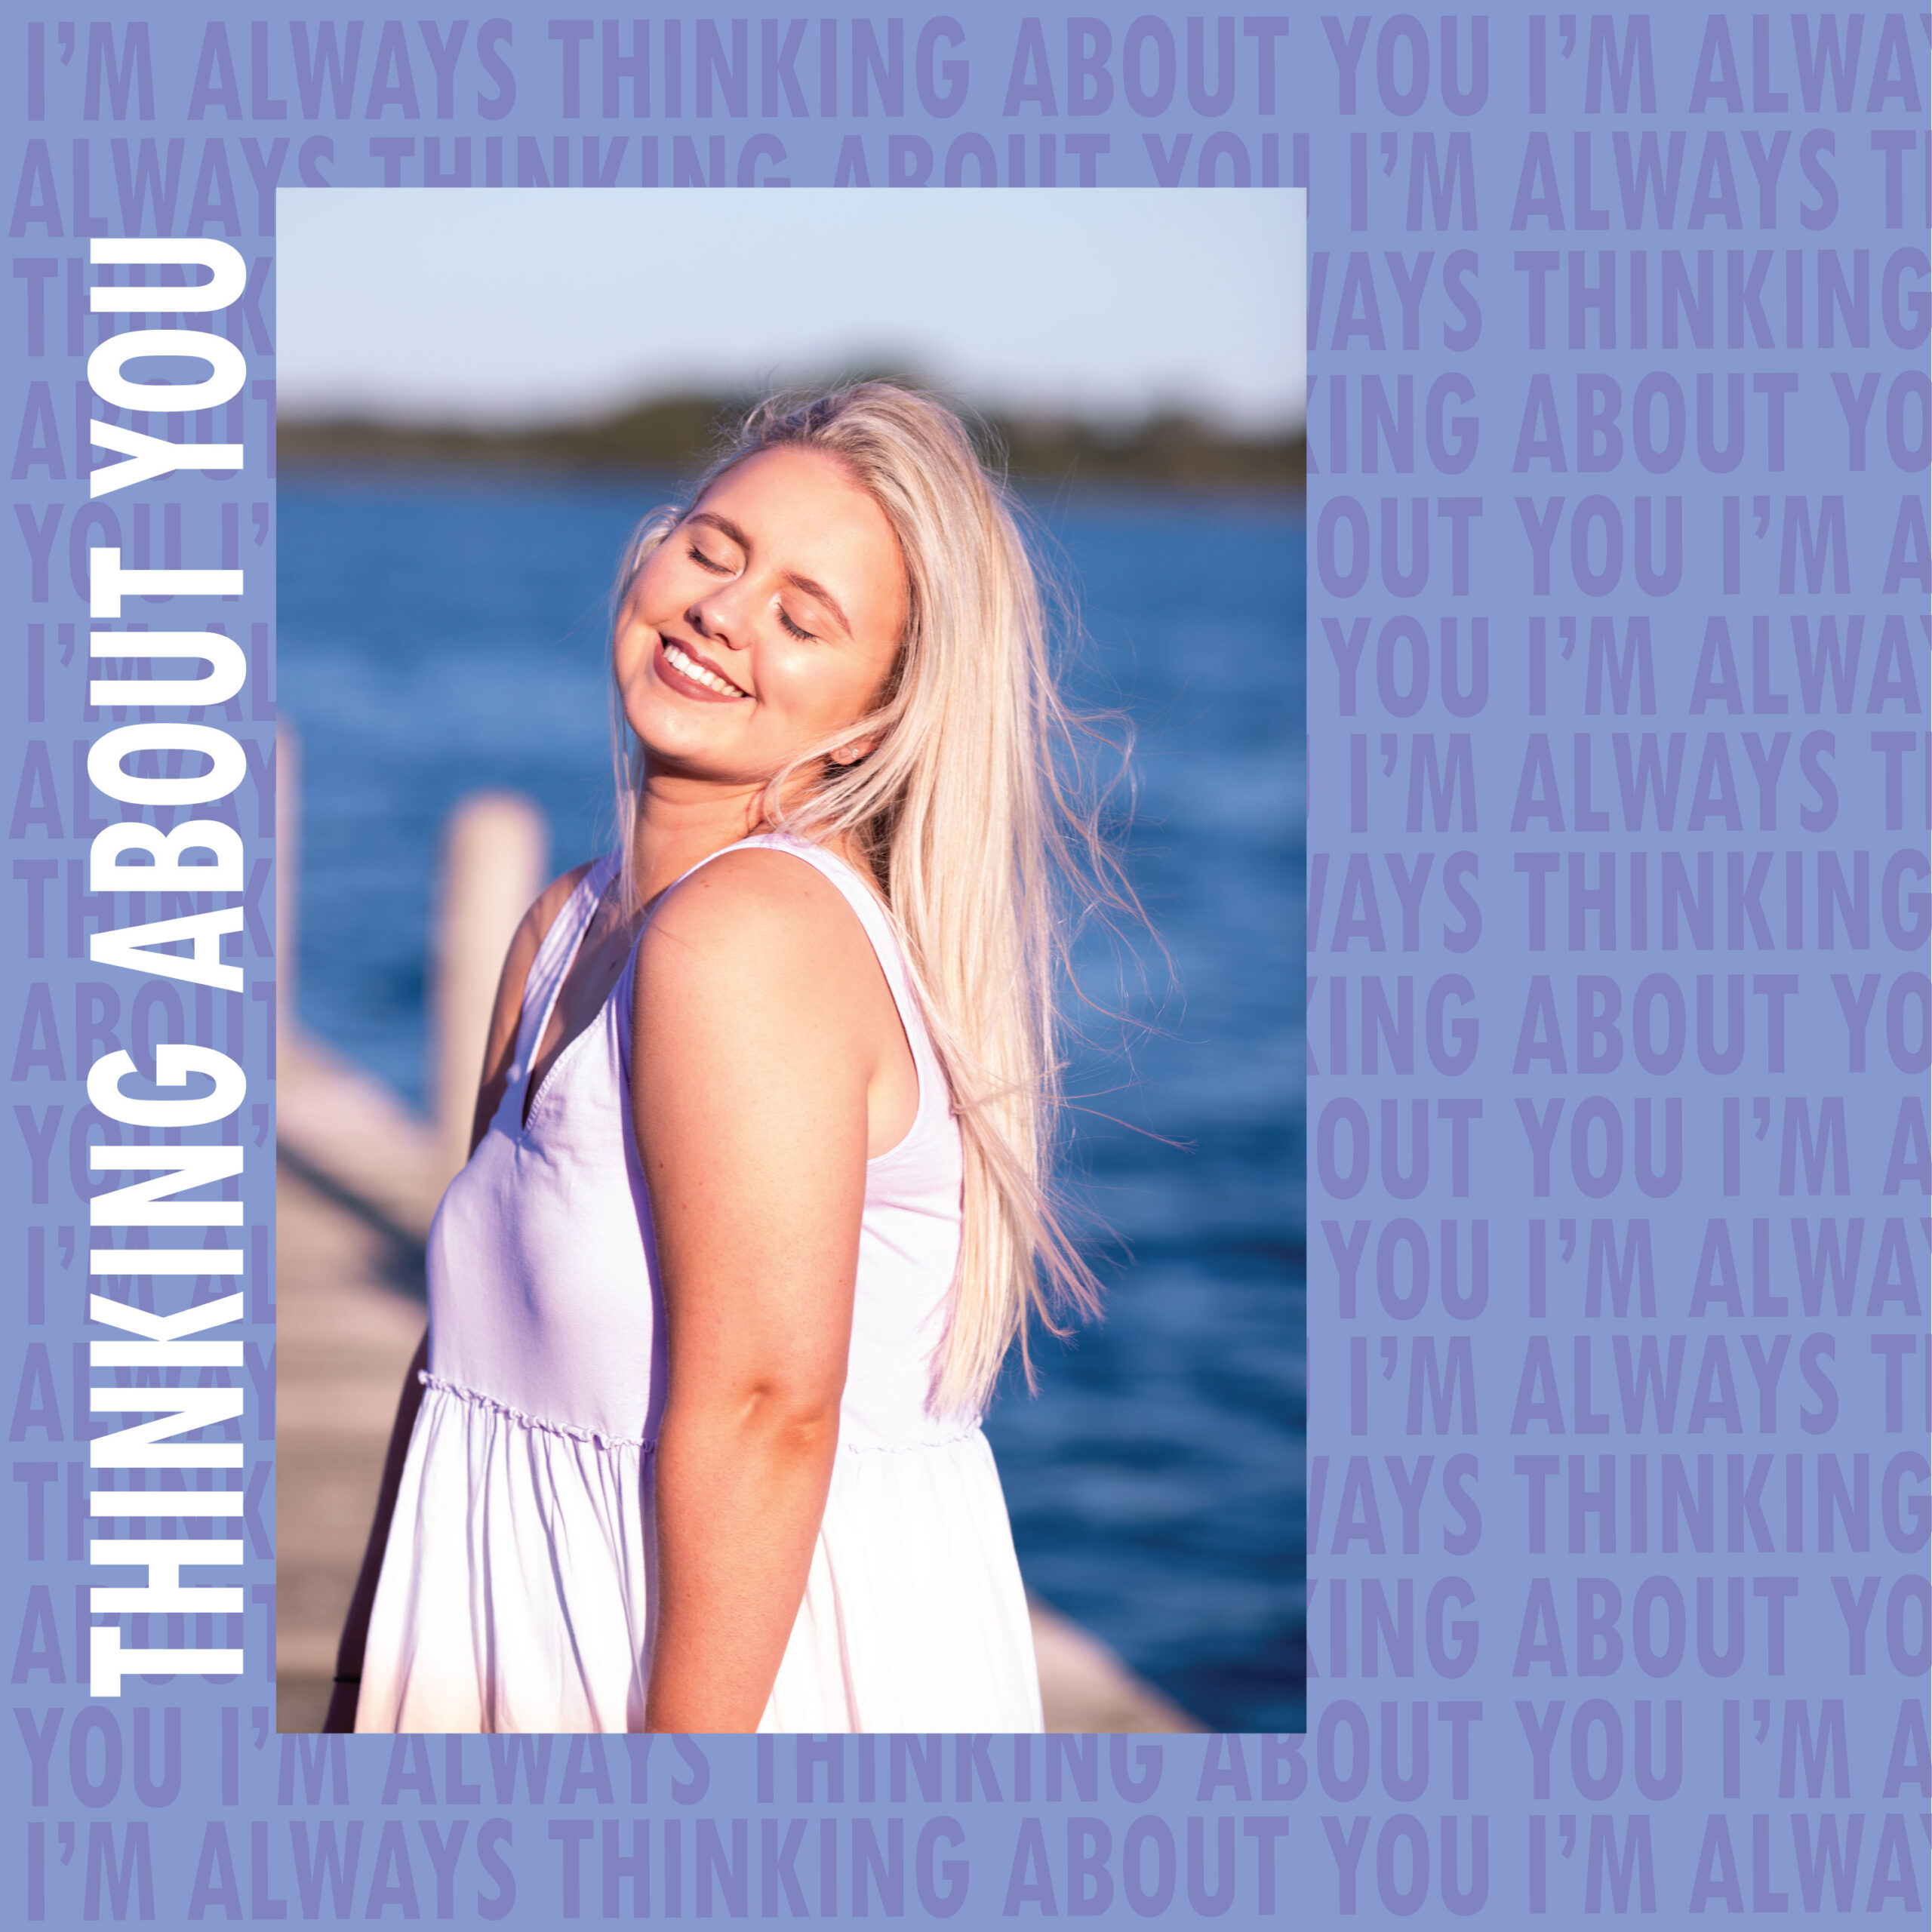 EMMA HORAN releases new single 'Thinking About You' today - Listen Now!